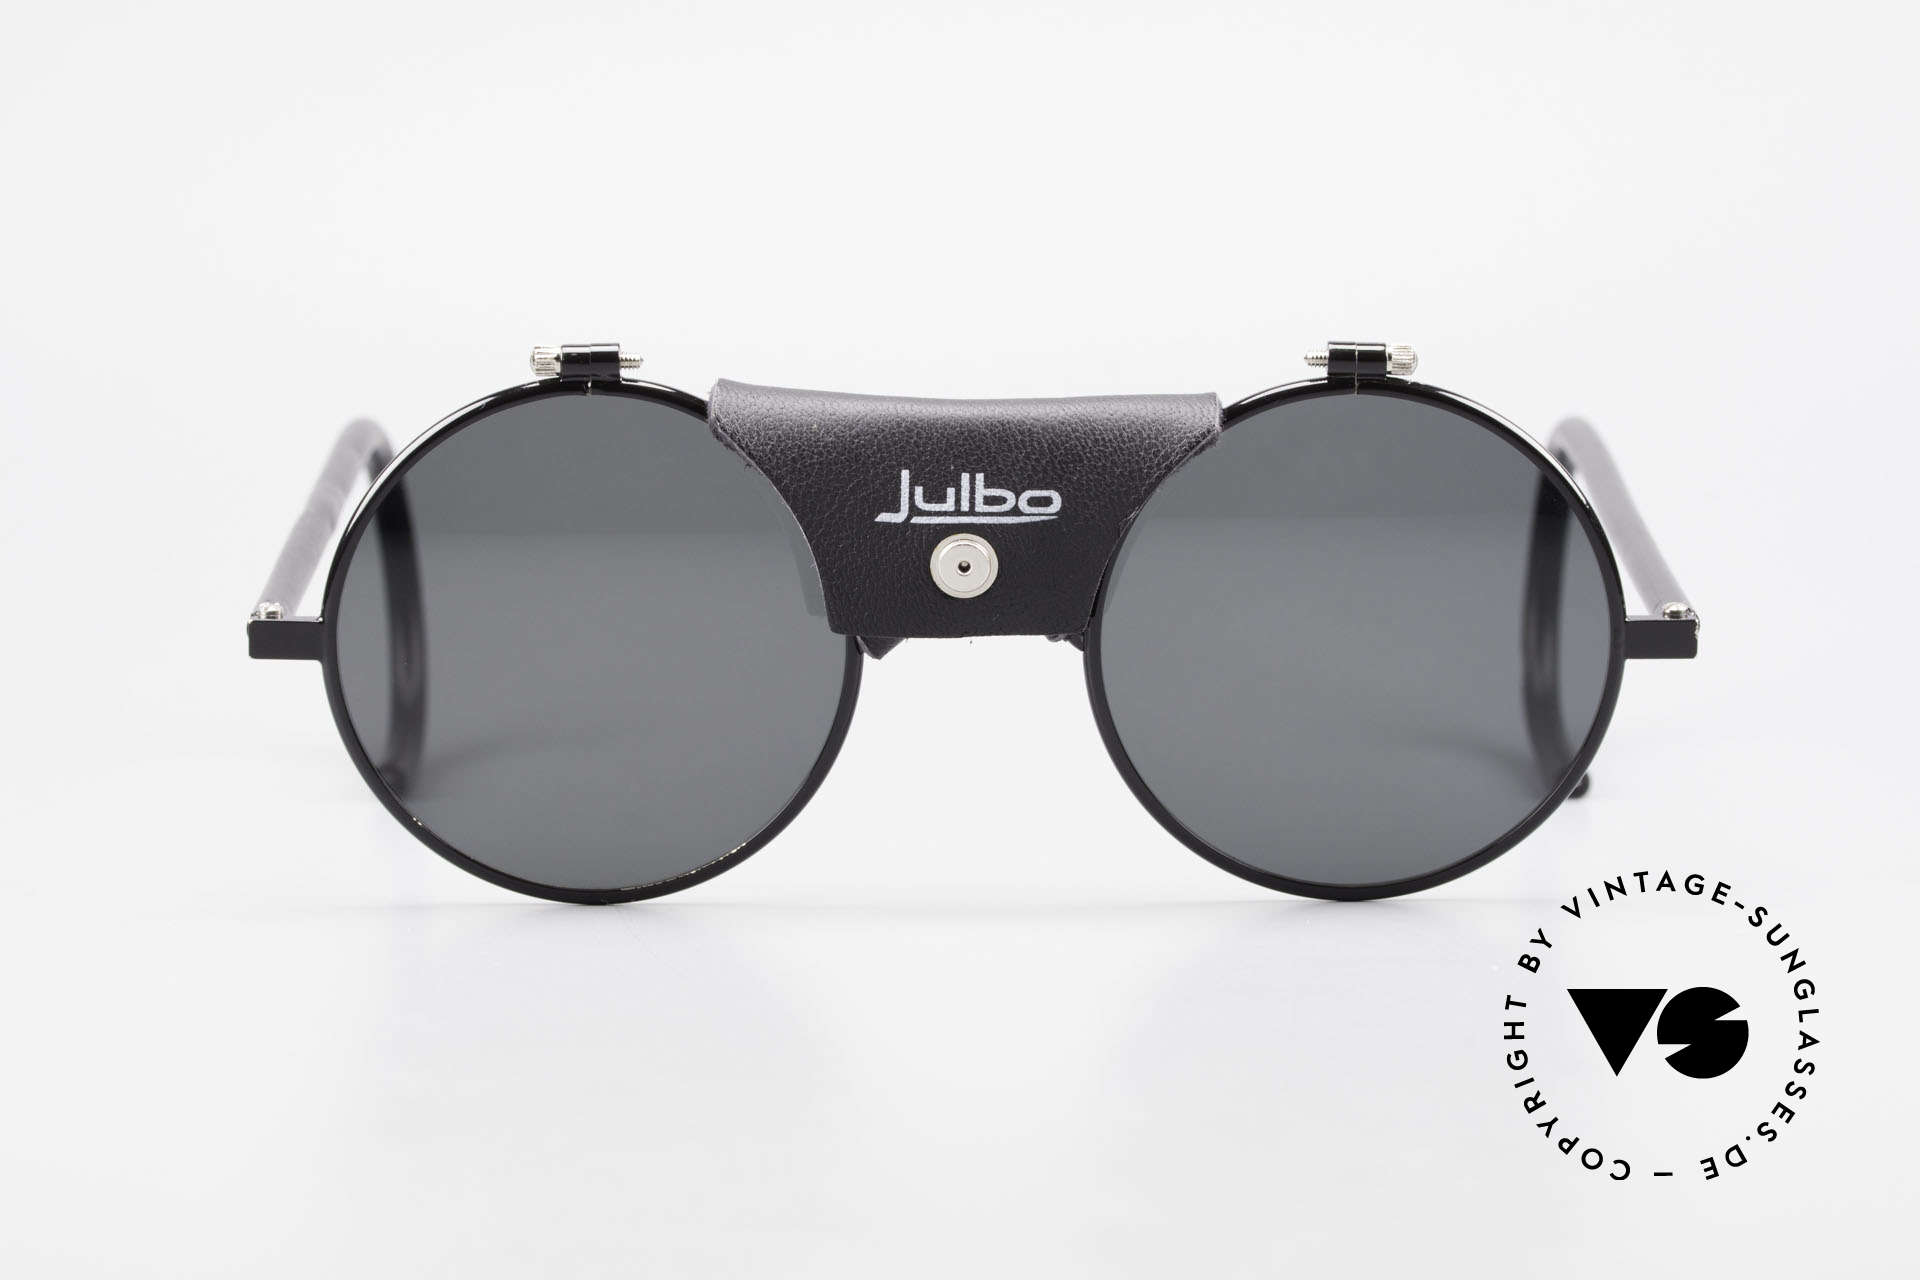 Julbo Vermont Round 90's Sports Sunglasses, made for extreme illumination (Water & Ice sports), Made for Men